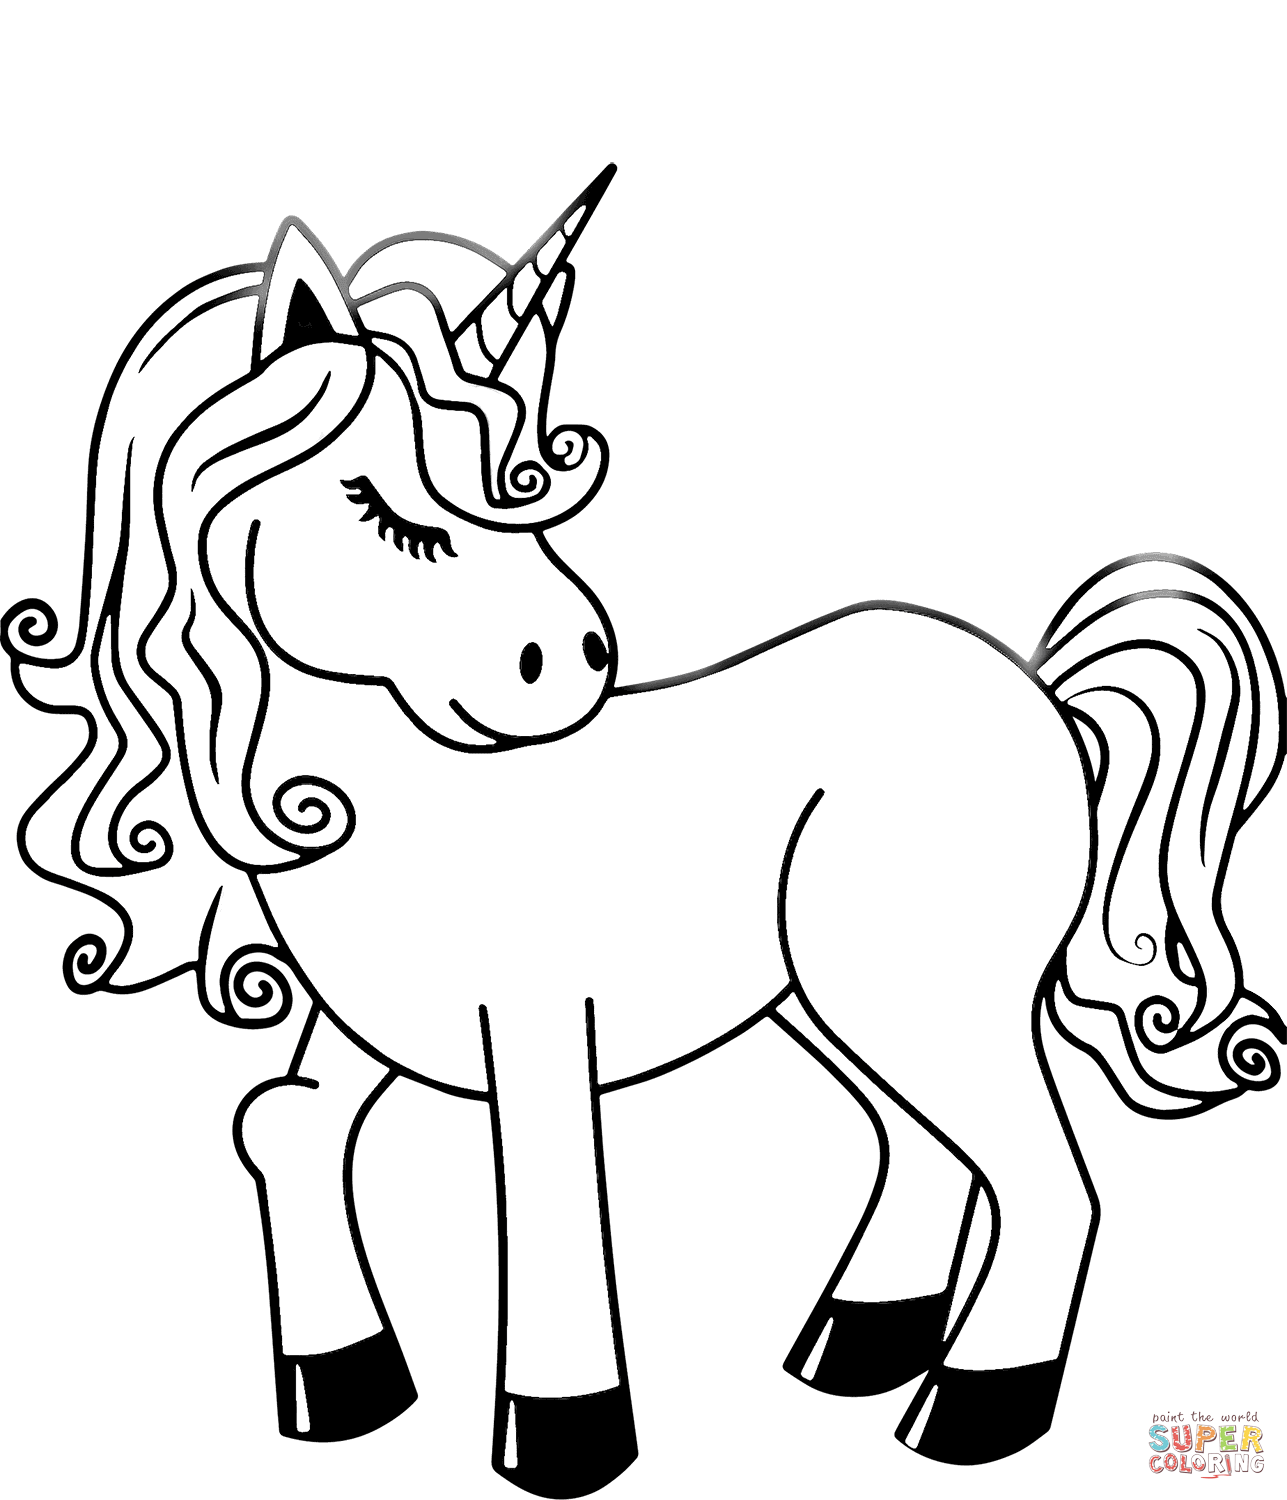 free coloring sheets unicorn cool unicorn coloring pages at getdrawings free download sheets free unicorn coloring